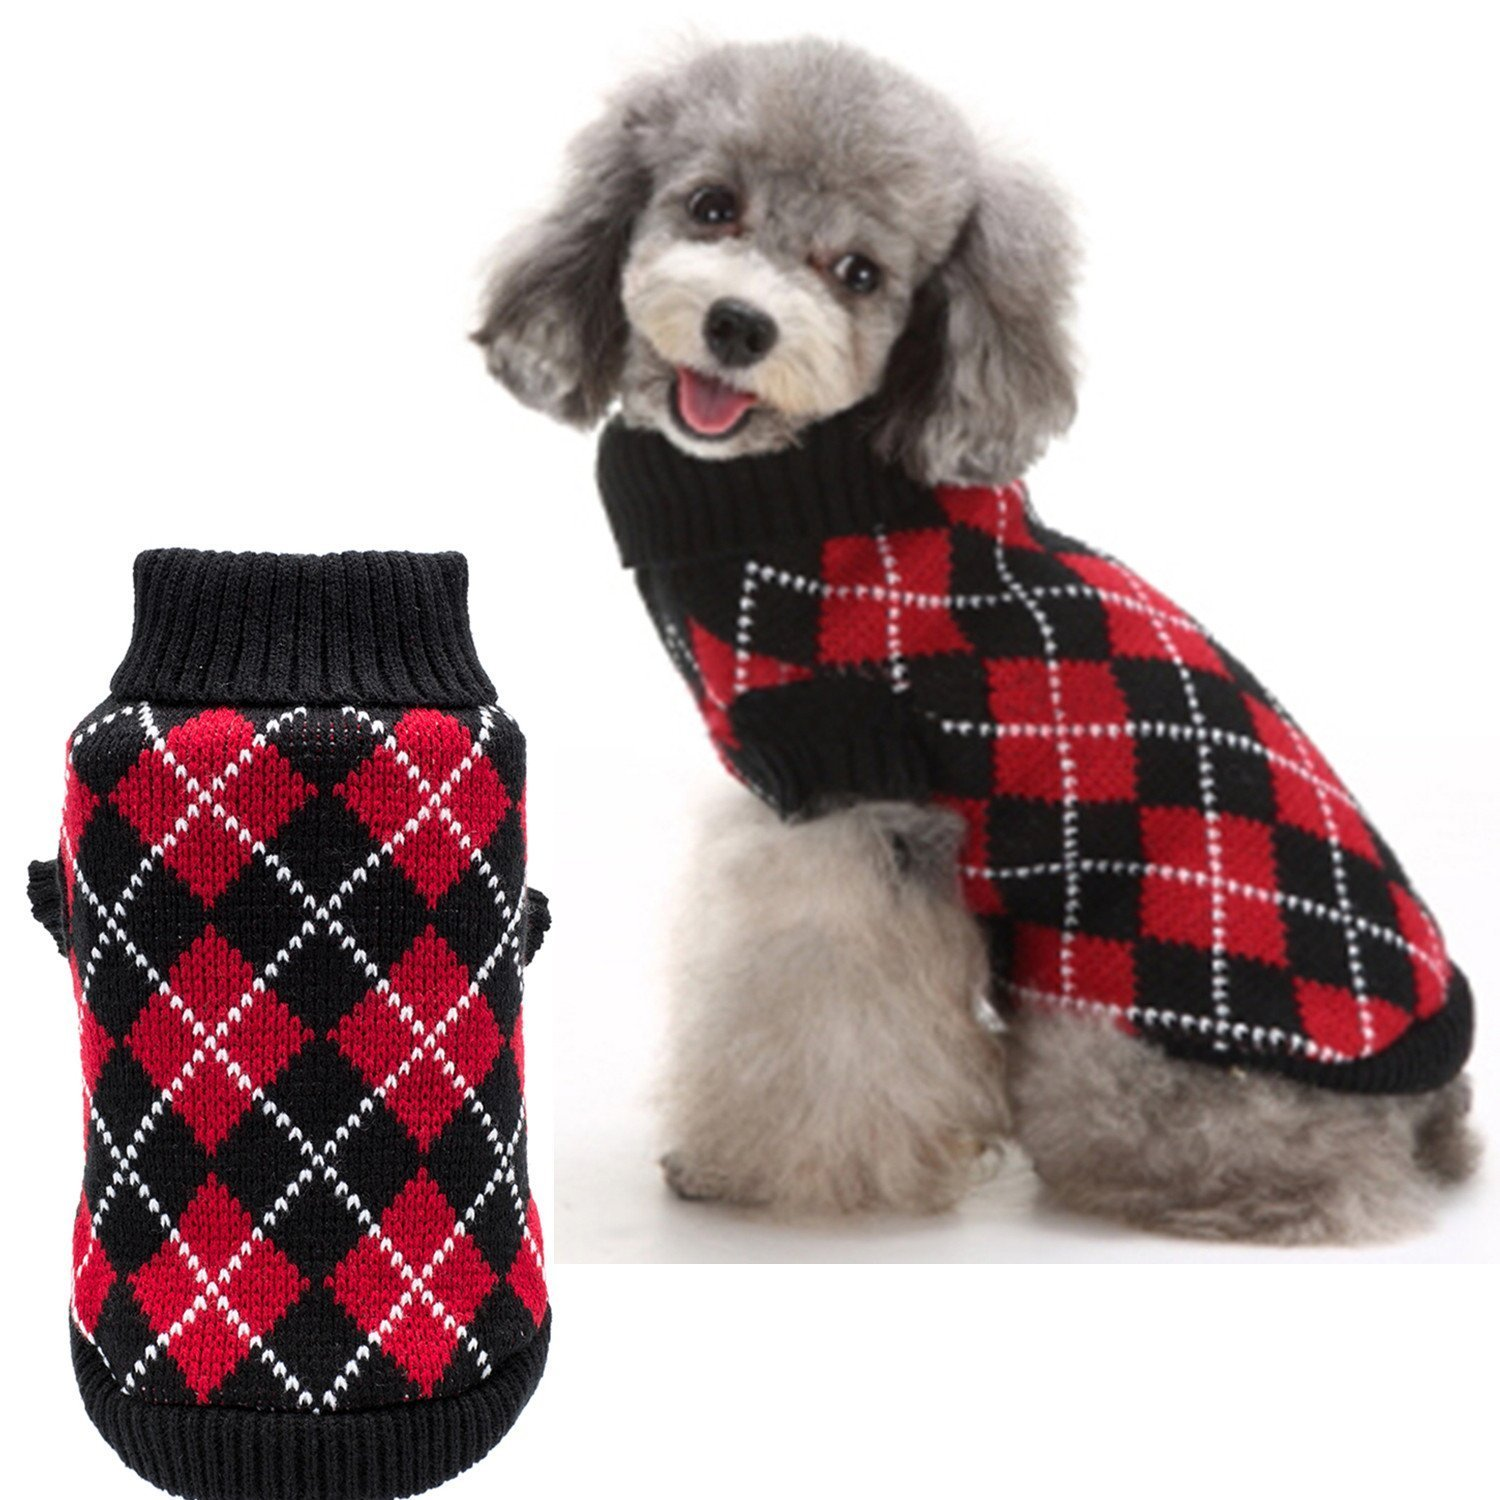 Amazon.com : Crochet Dog Argyle Sweater Knitted for Small Doggie ...